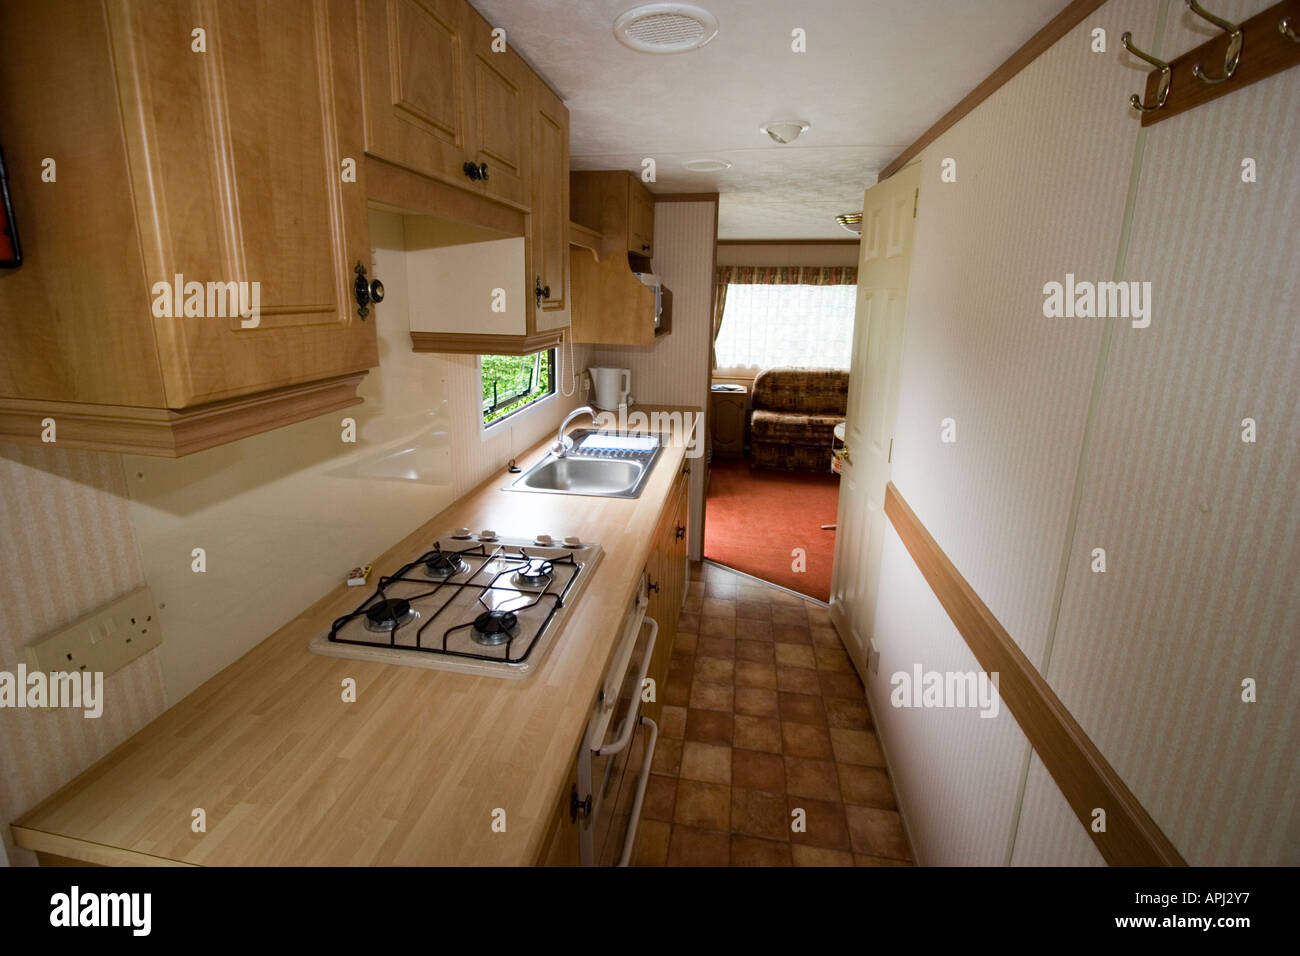 Luxe Caravan Interieur Luxury Caravan Inside Photos Luxury Caravan Inside Images Alamy